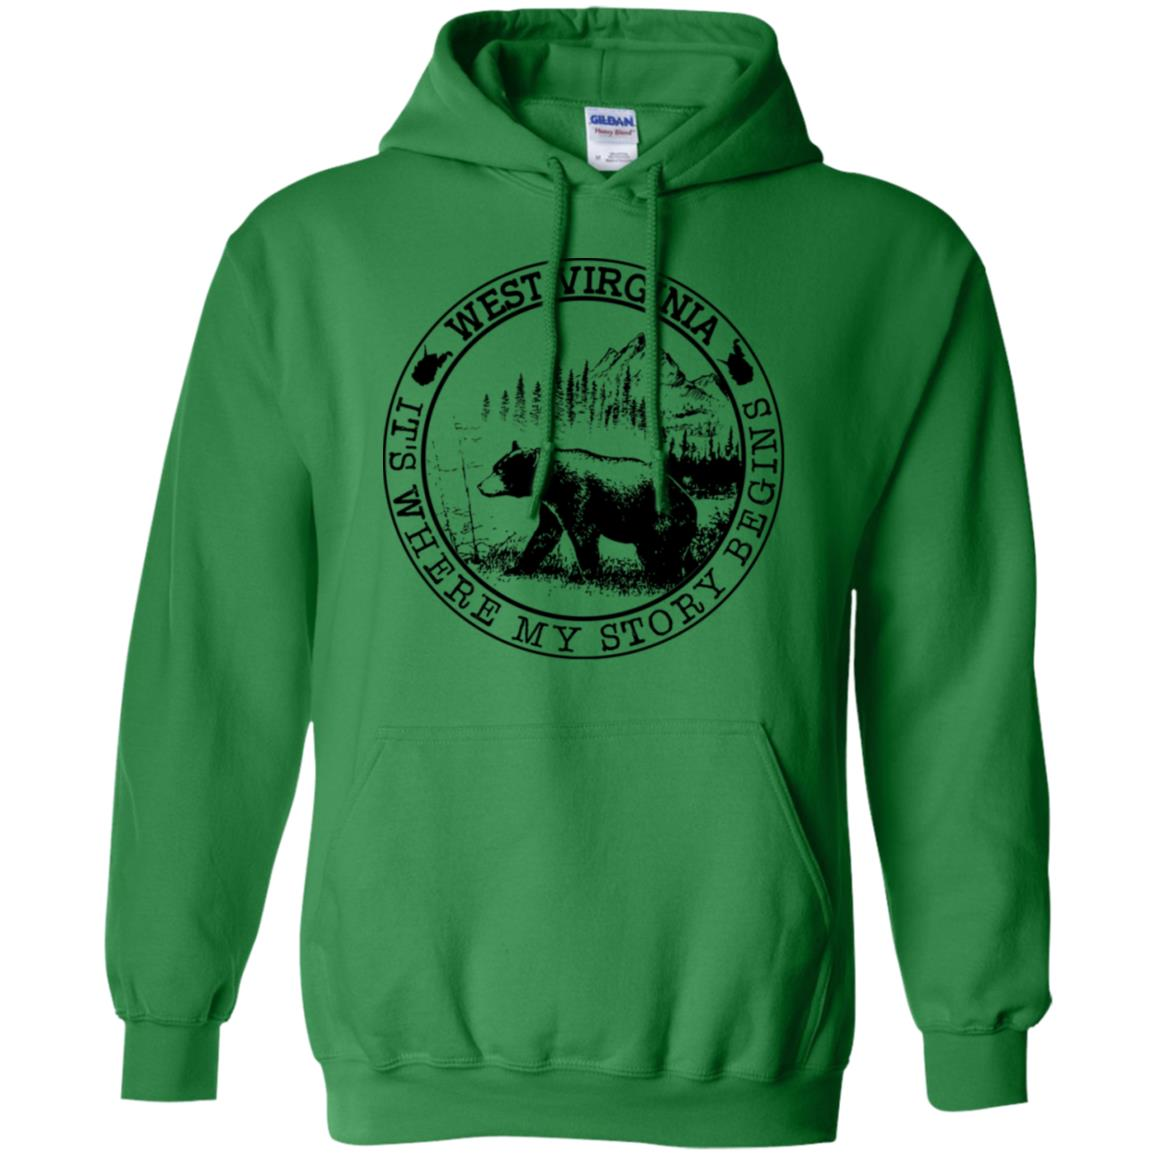 West Virginia It's Where My Story Begins Hoodie